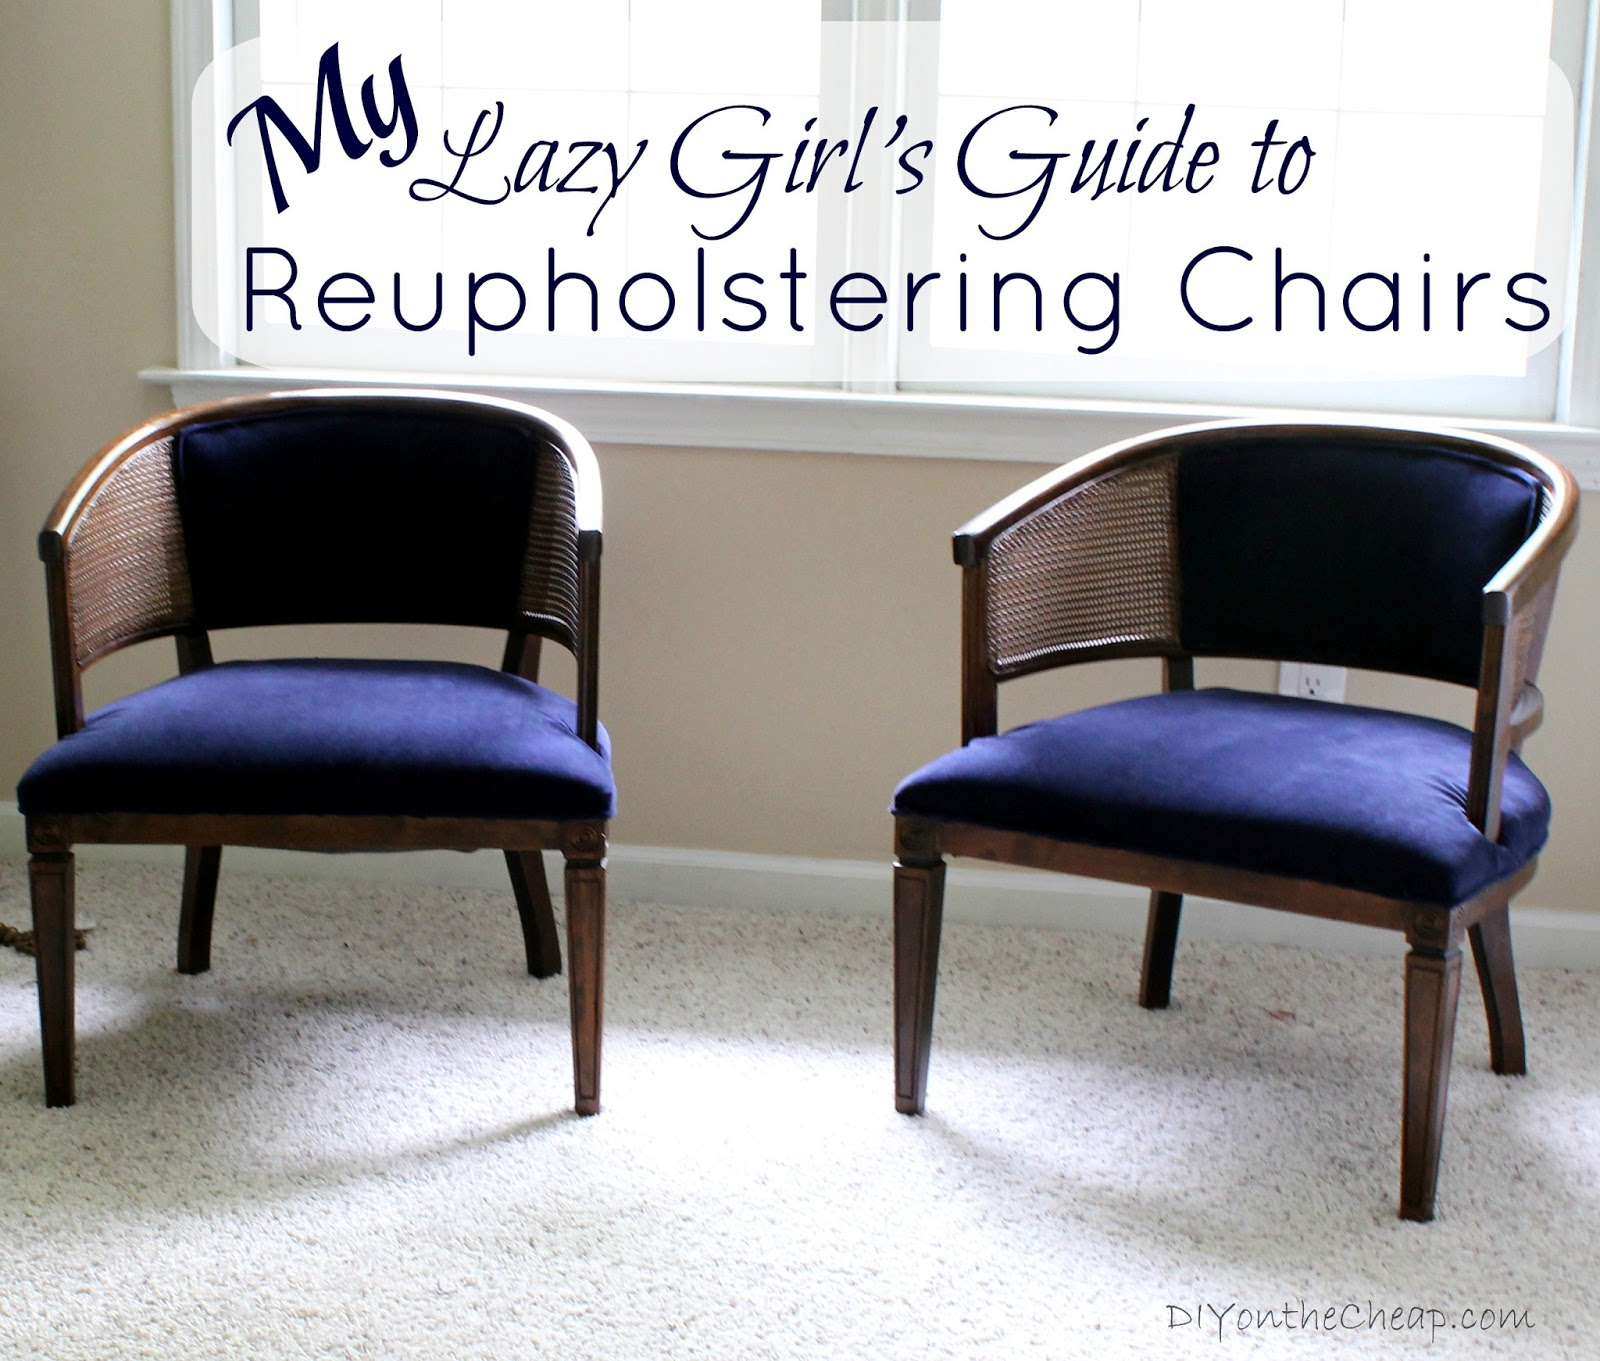 My Lazy Girl's Guide To Reupholstering Chairs {A Tutorial} Erin . Full resolution‎  portraiture, nominally Width 1600 Height 1361 pixels, portraiture with #40498B.